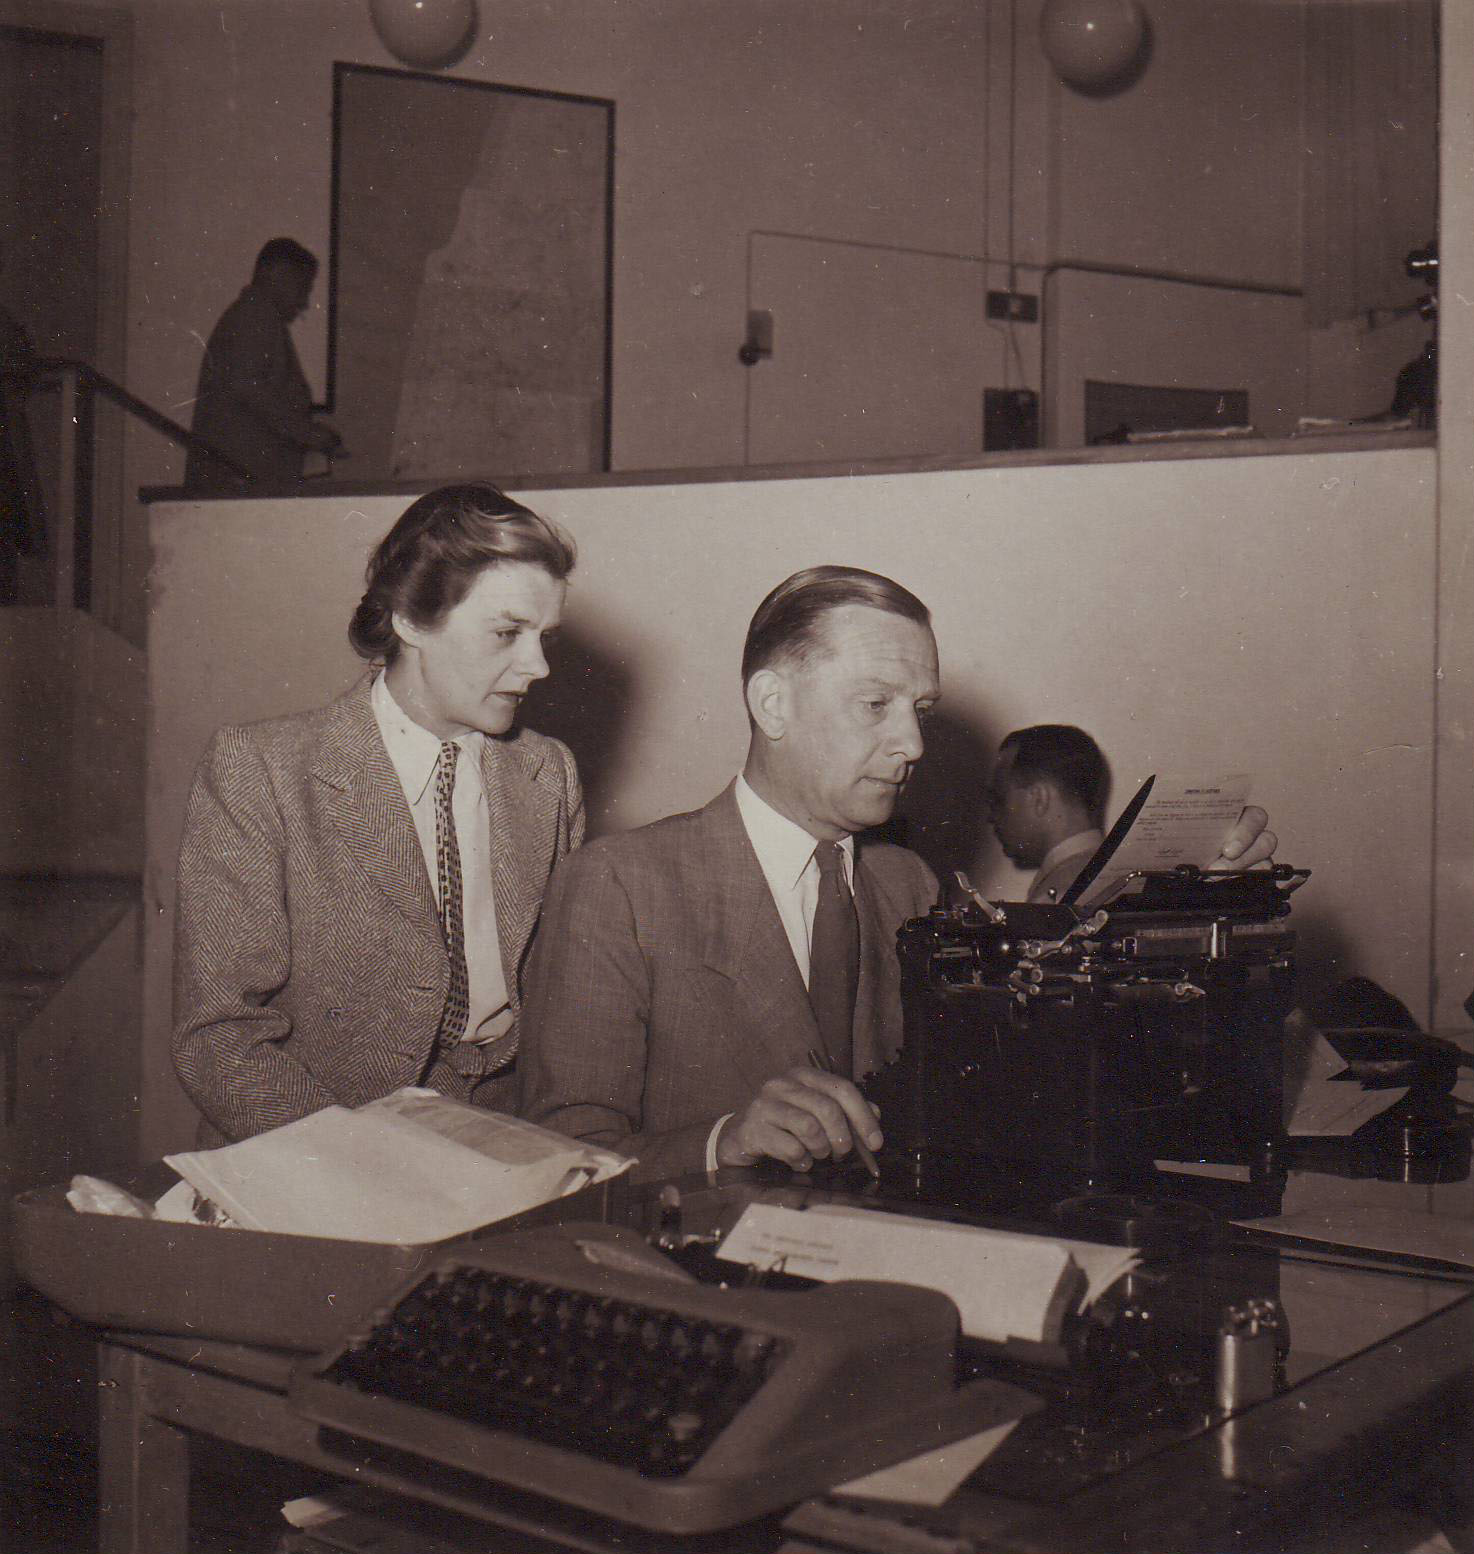 Clare Hollingworth and fiancee, later husband, Geoffrey Hoare at the press center in Palestine, prior to foundation of state of Israel, late 1940s